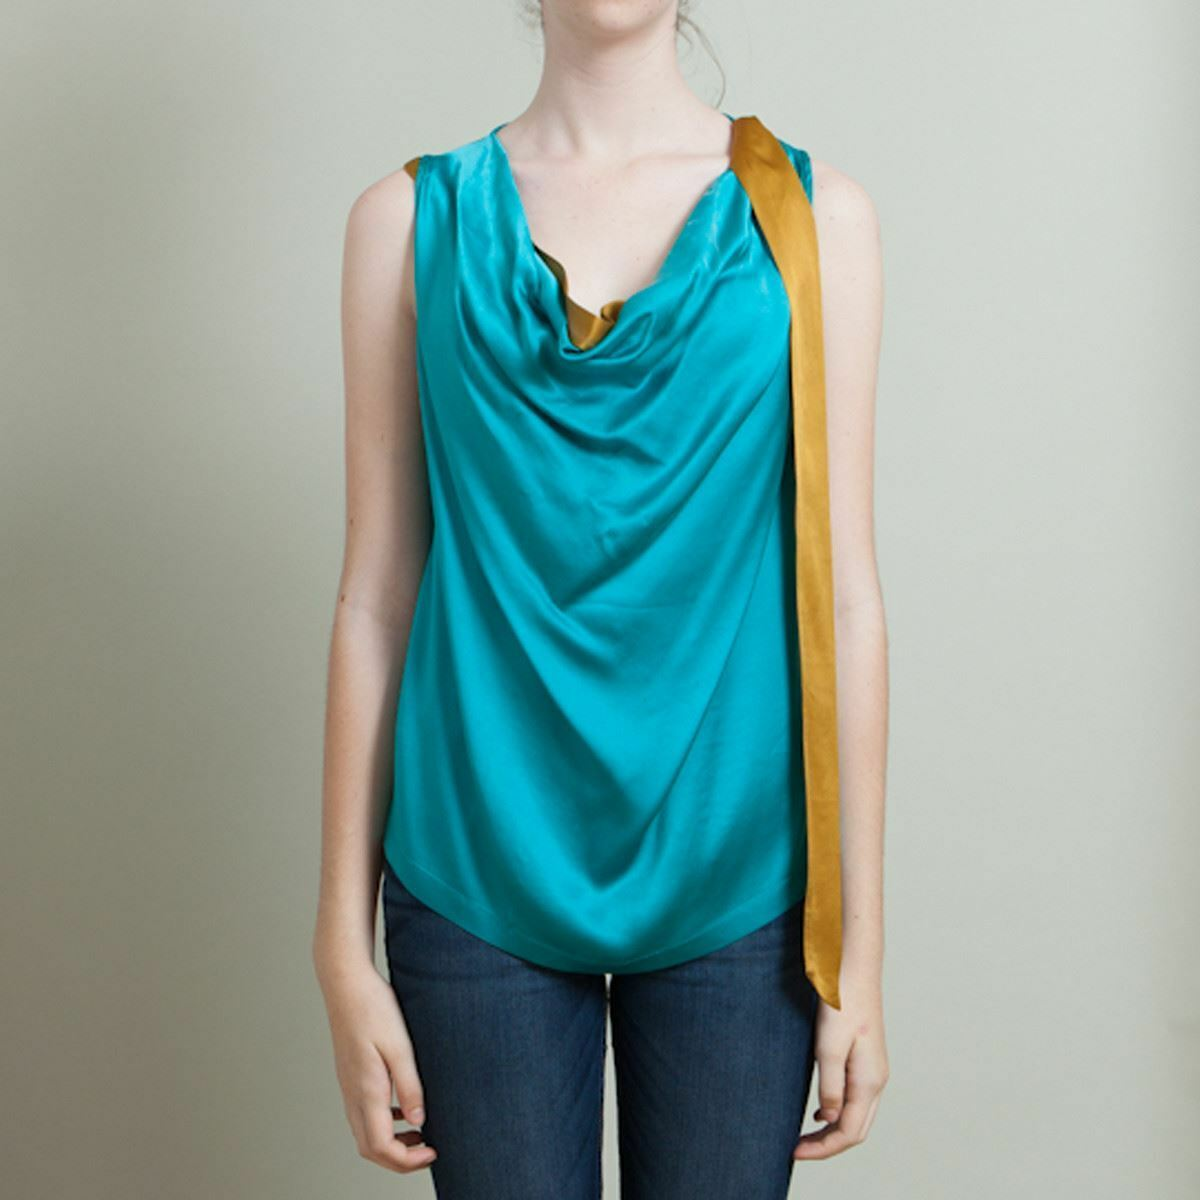 Dries Van Noten Teal bluee Silk Top - Size 42